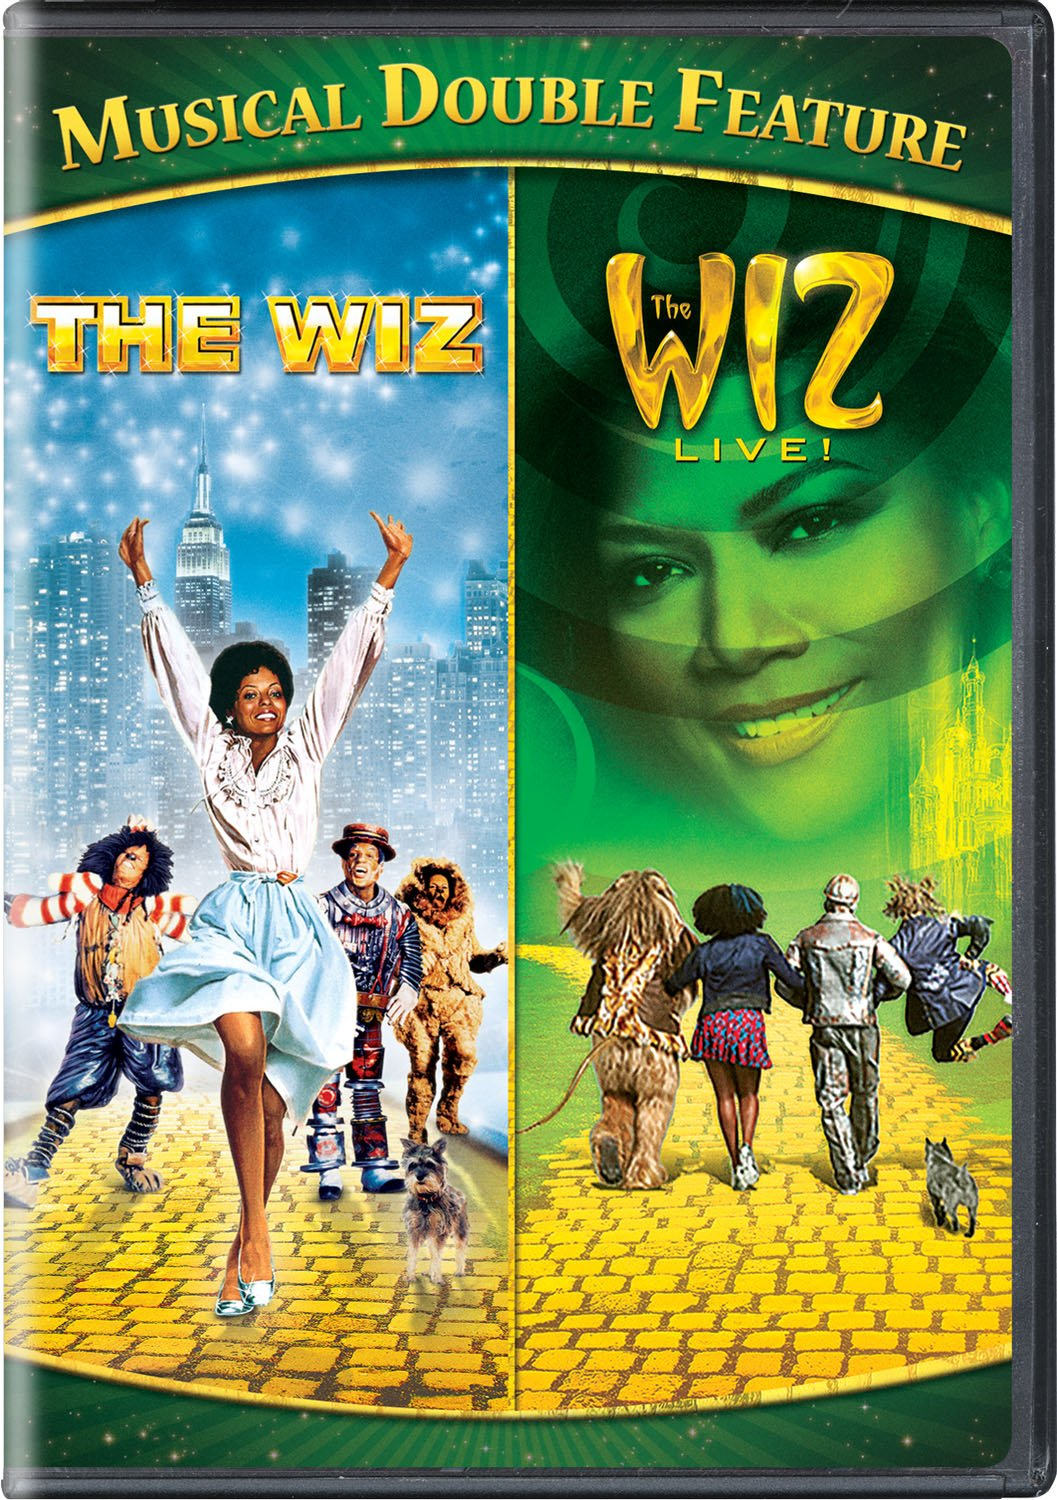 Amazon com: The Wiz / The Wiz Live! Musical Double Feature